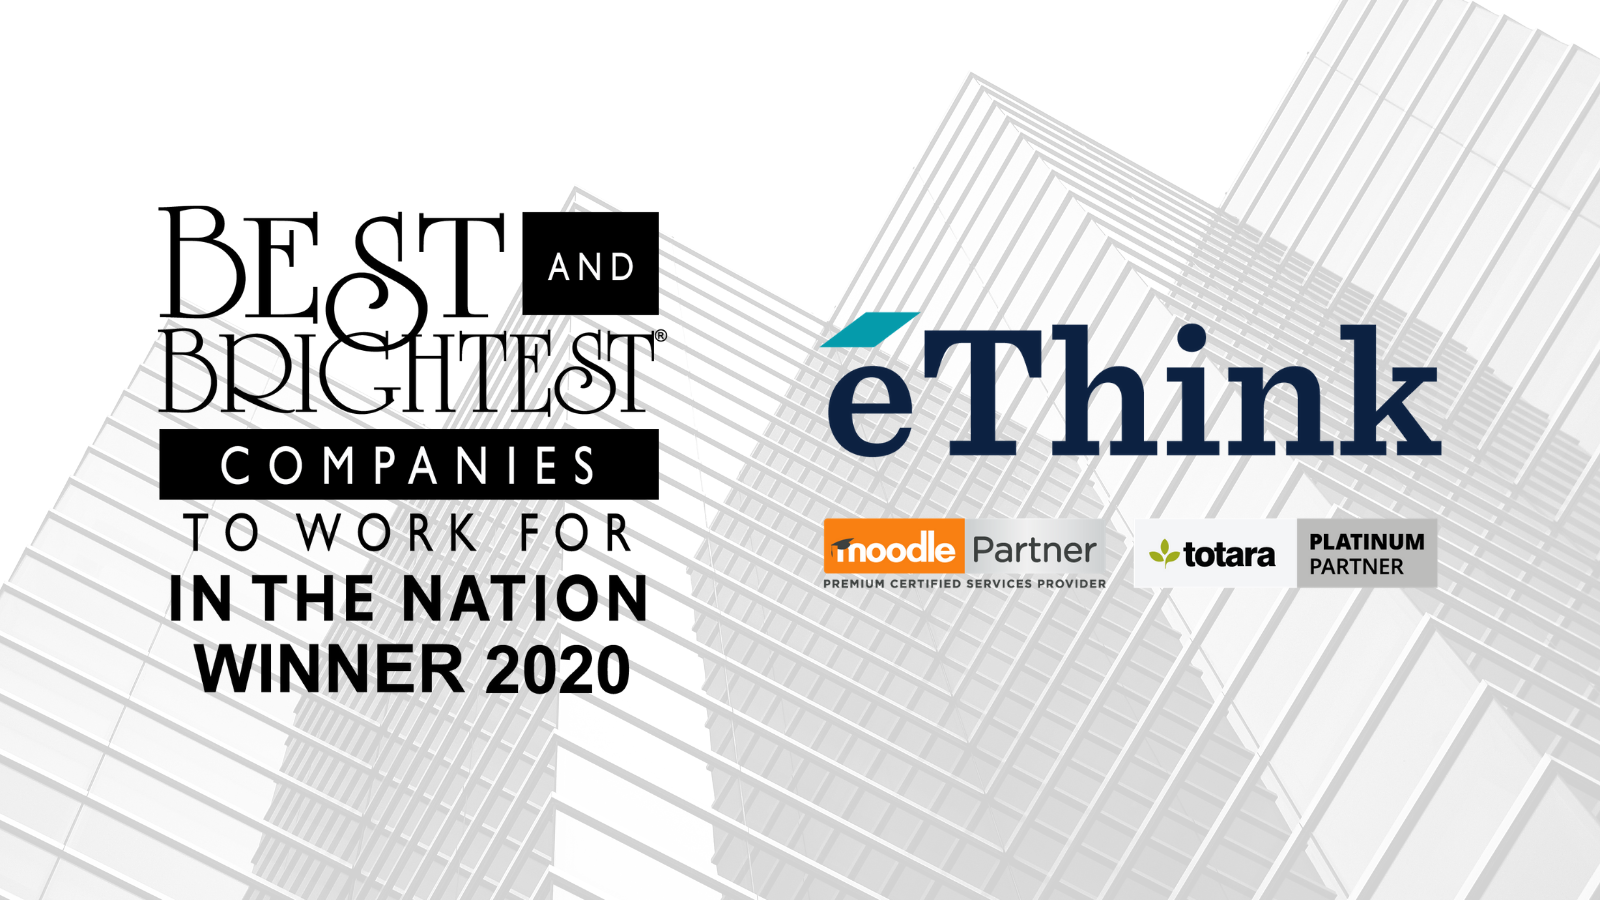 eThink Wins Best and Brightest Award